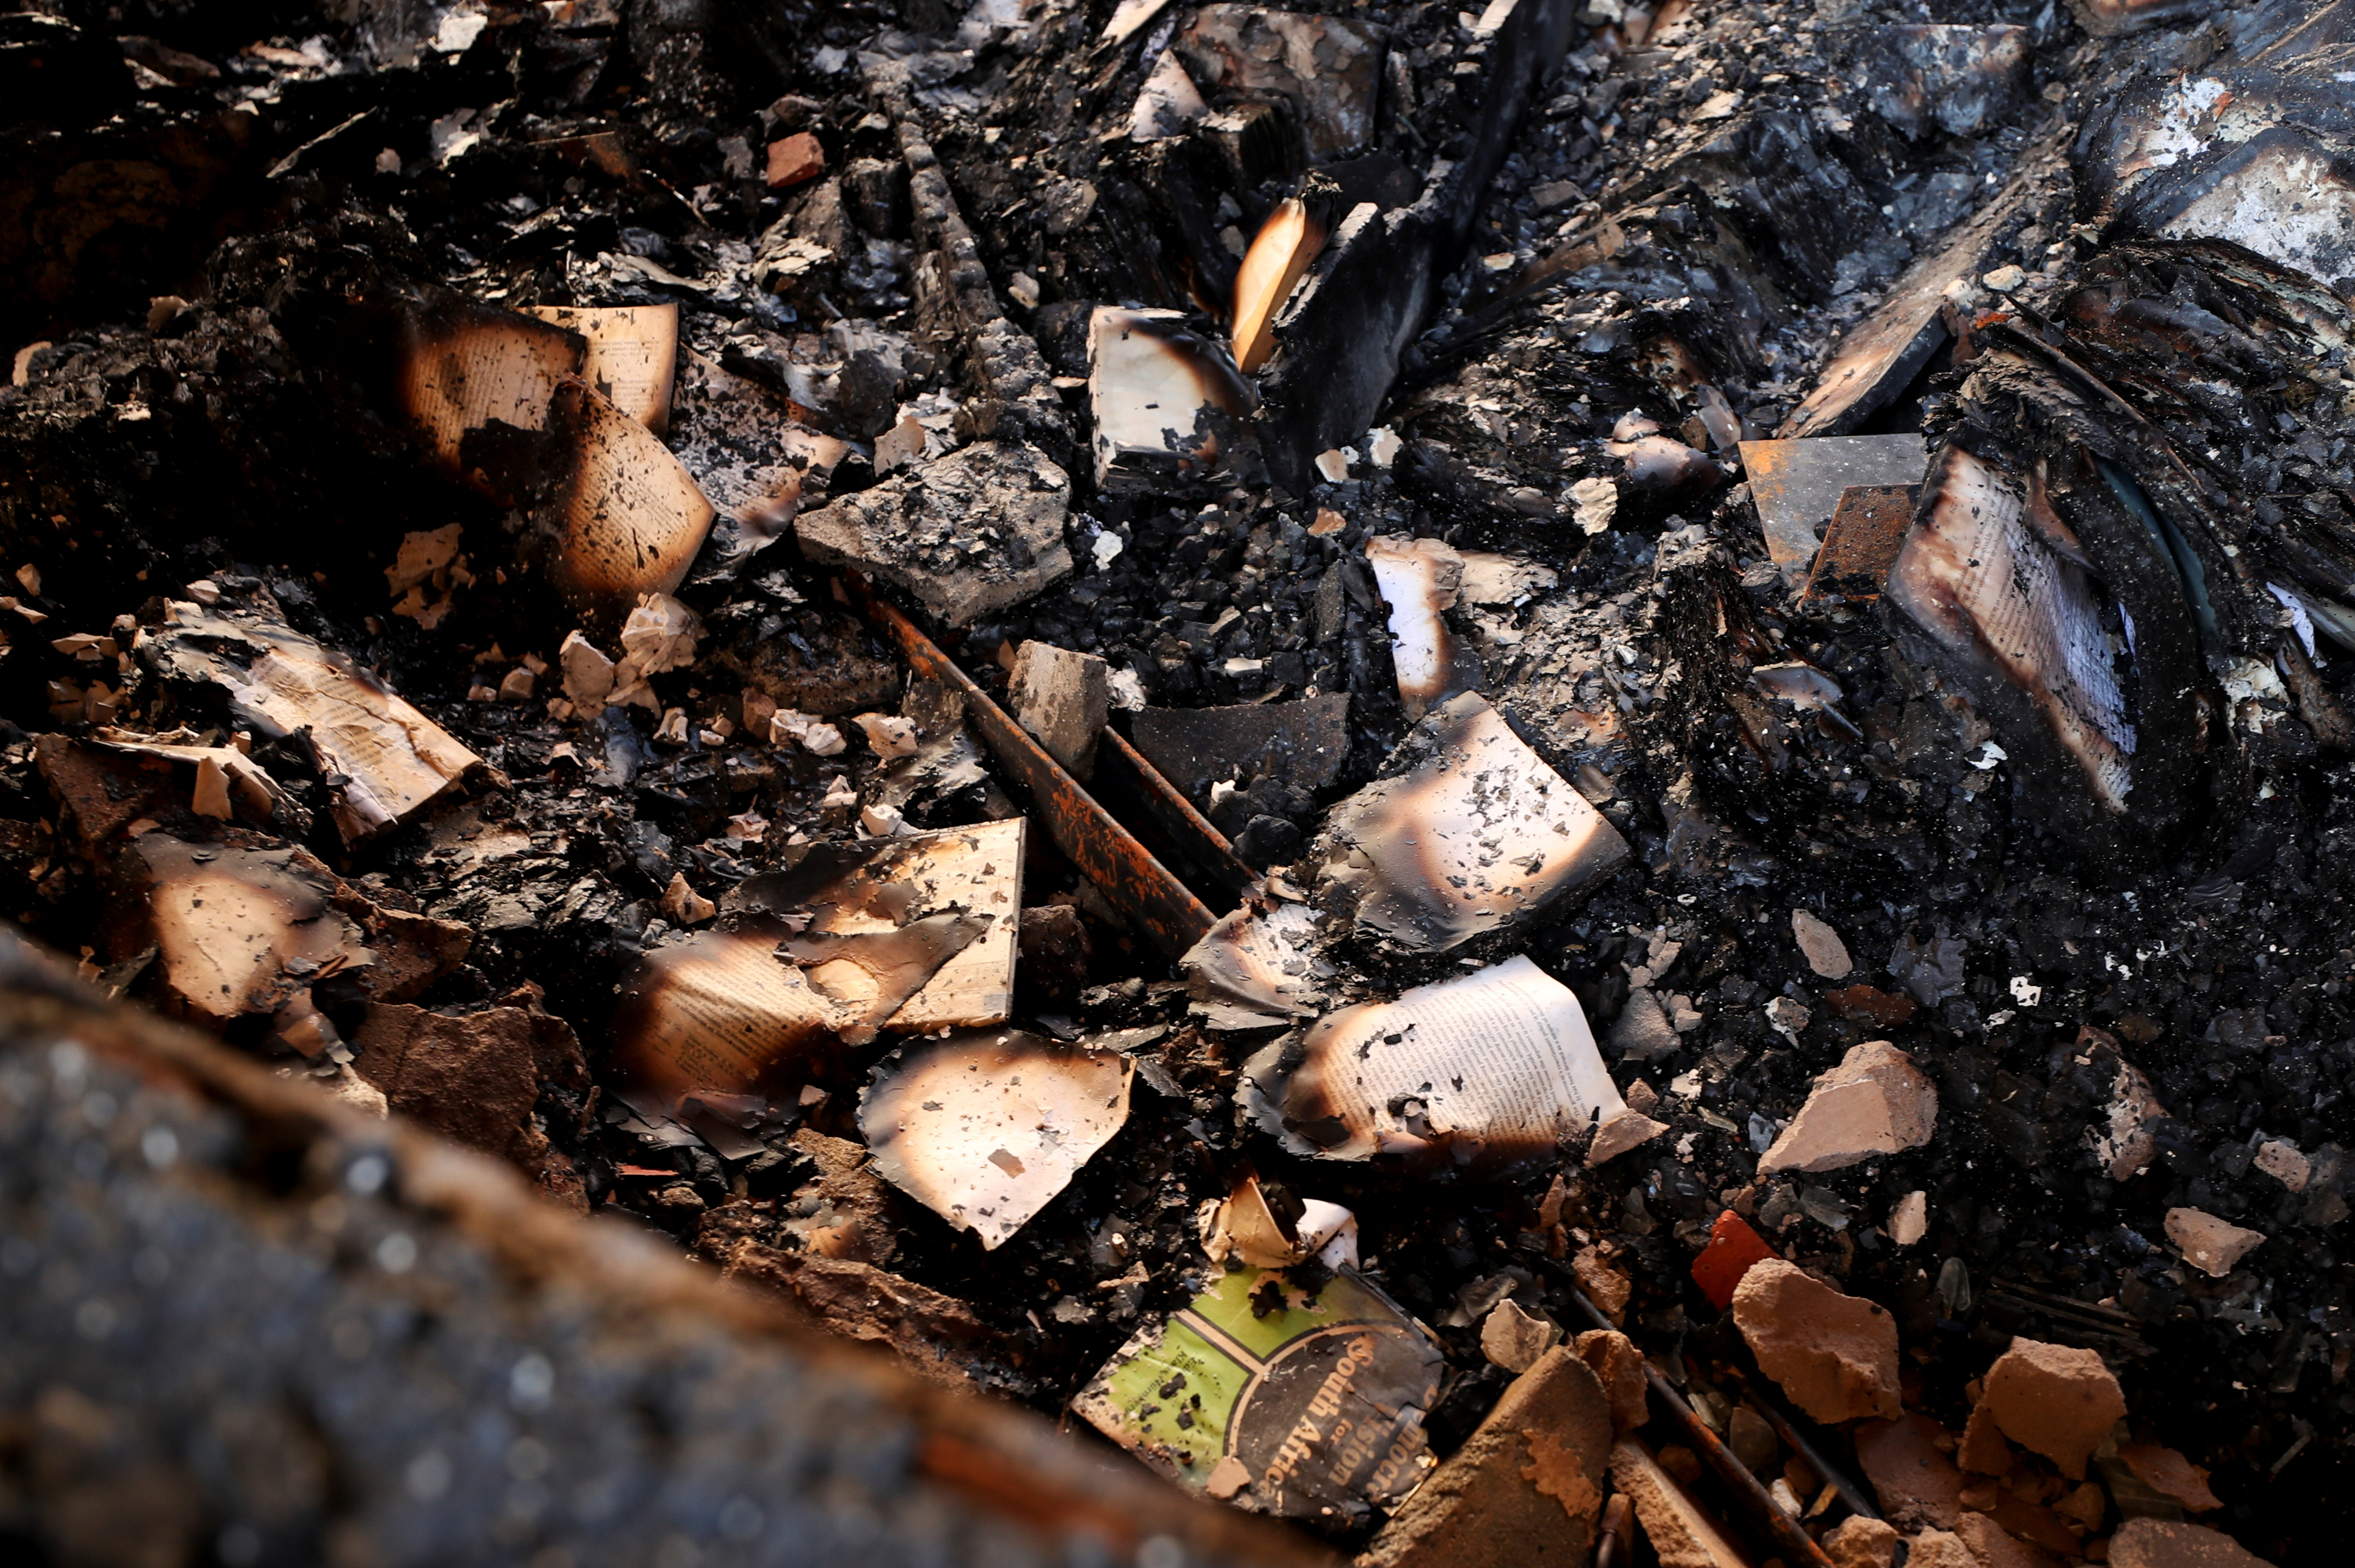 Burnt books are seen in the burnt out remains of Jagger Library at the University of Cape Town in Cape Town, South Africa, April 20, 2021. REUTERS/Mike Hutchings